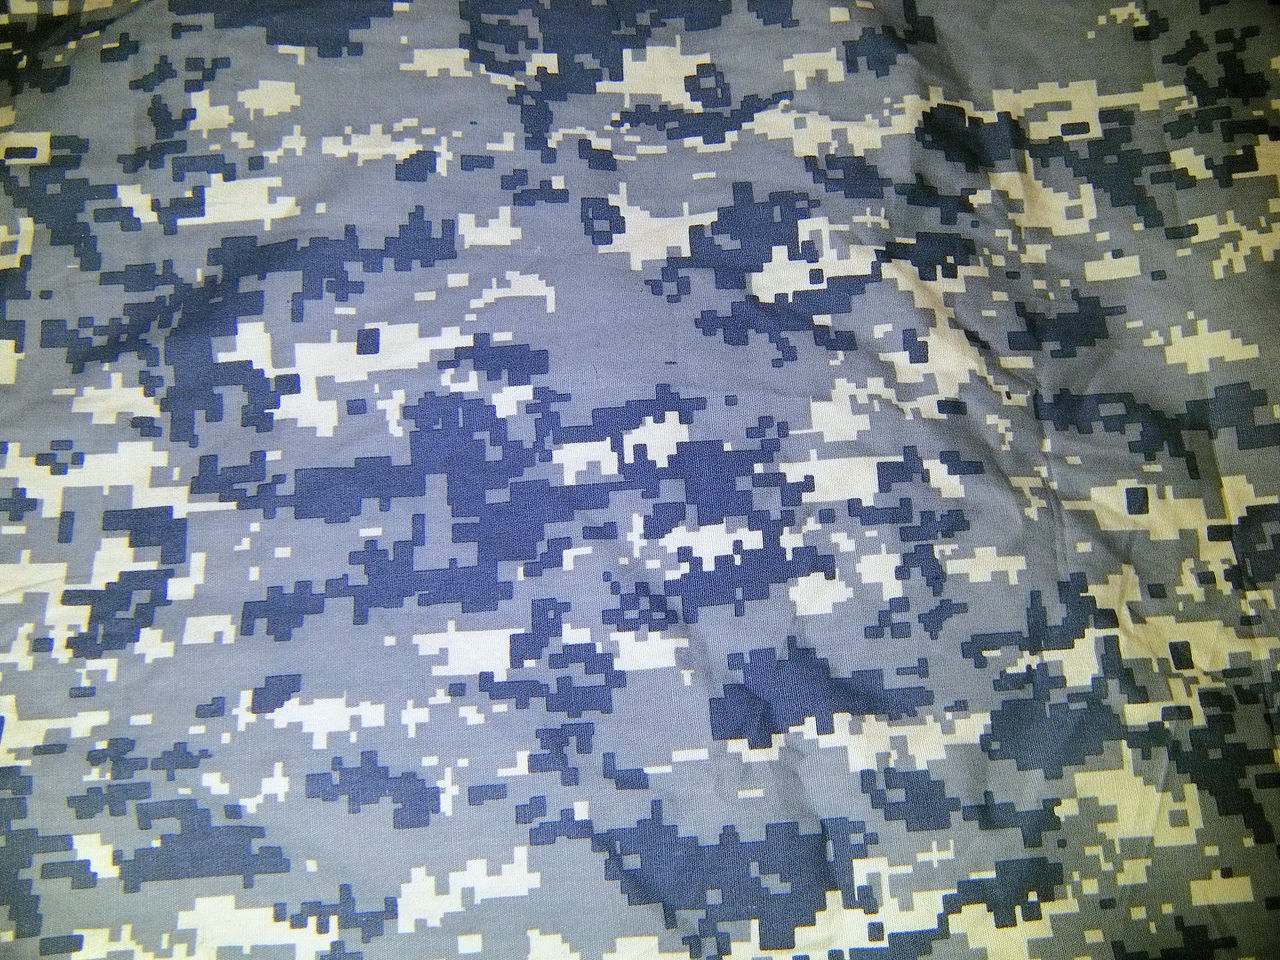 Pattern Pieces Camo Camouflage Blending In  Drab Patterns & Textures Military Surplus Fashion